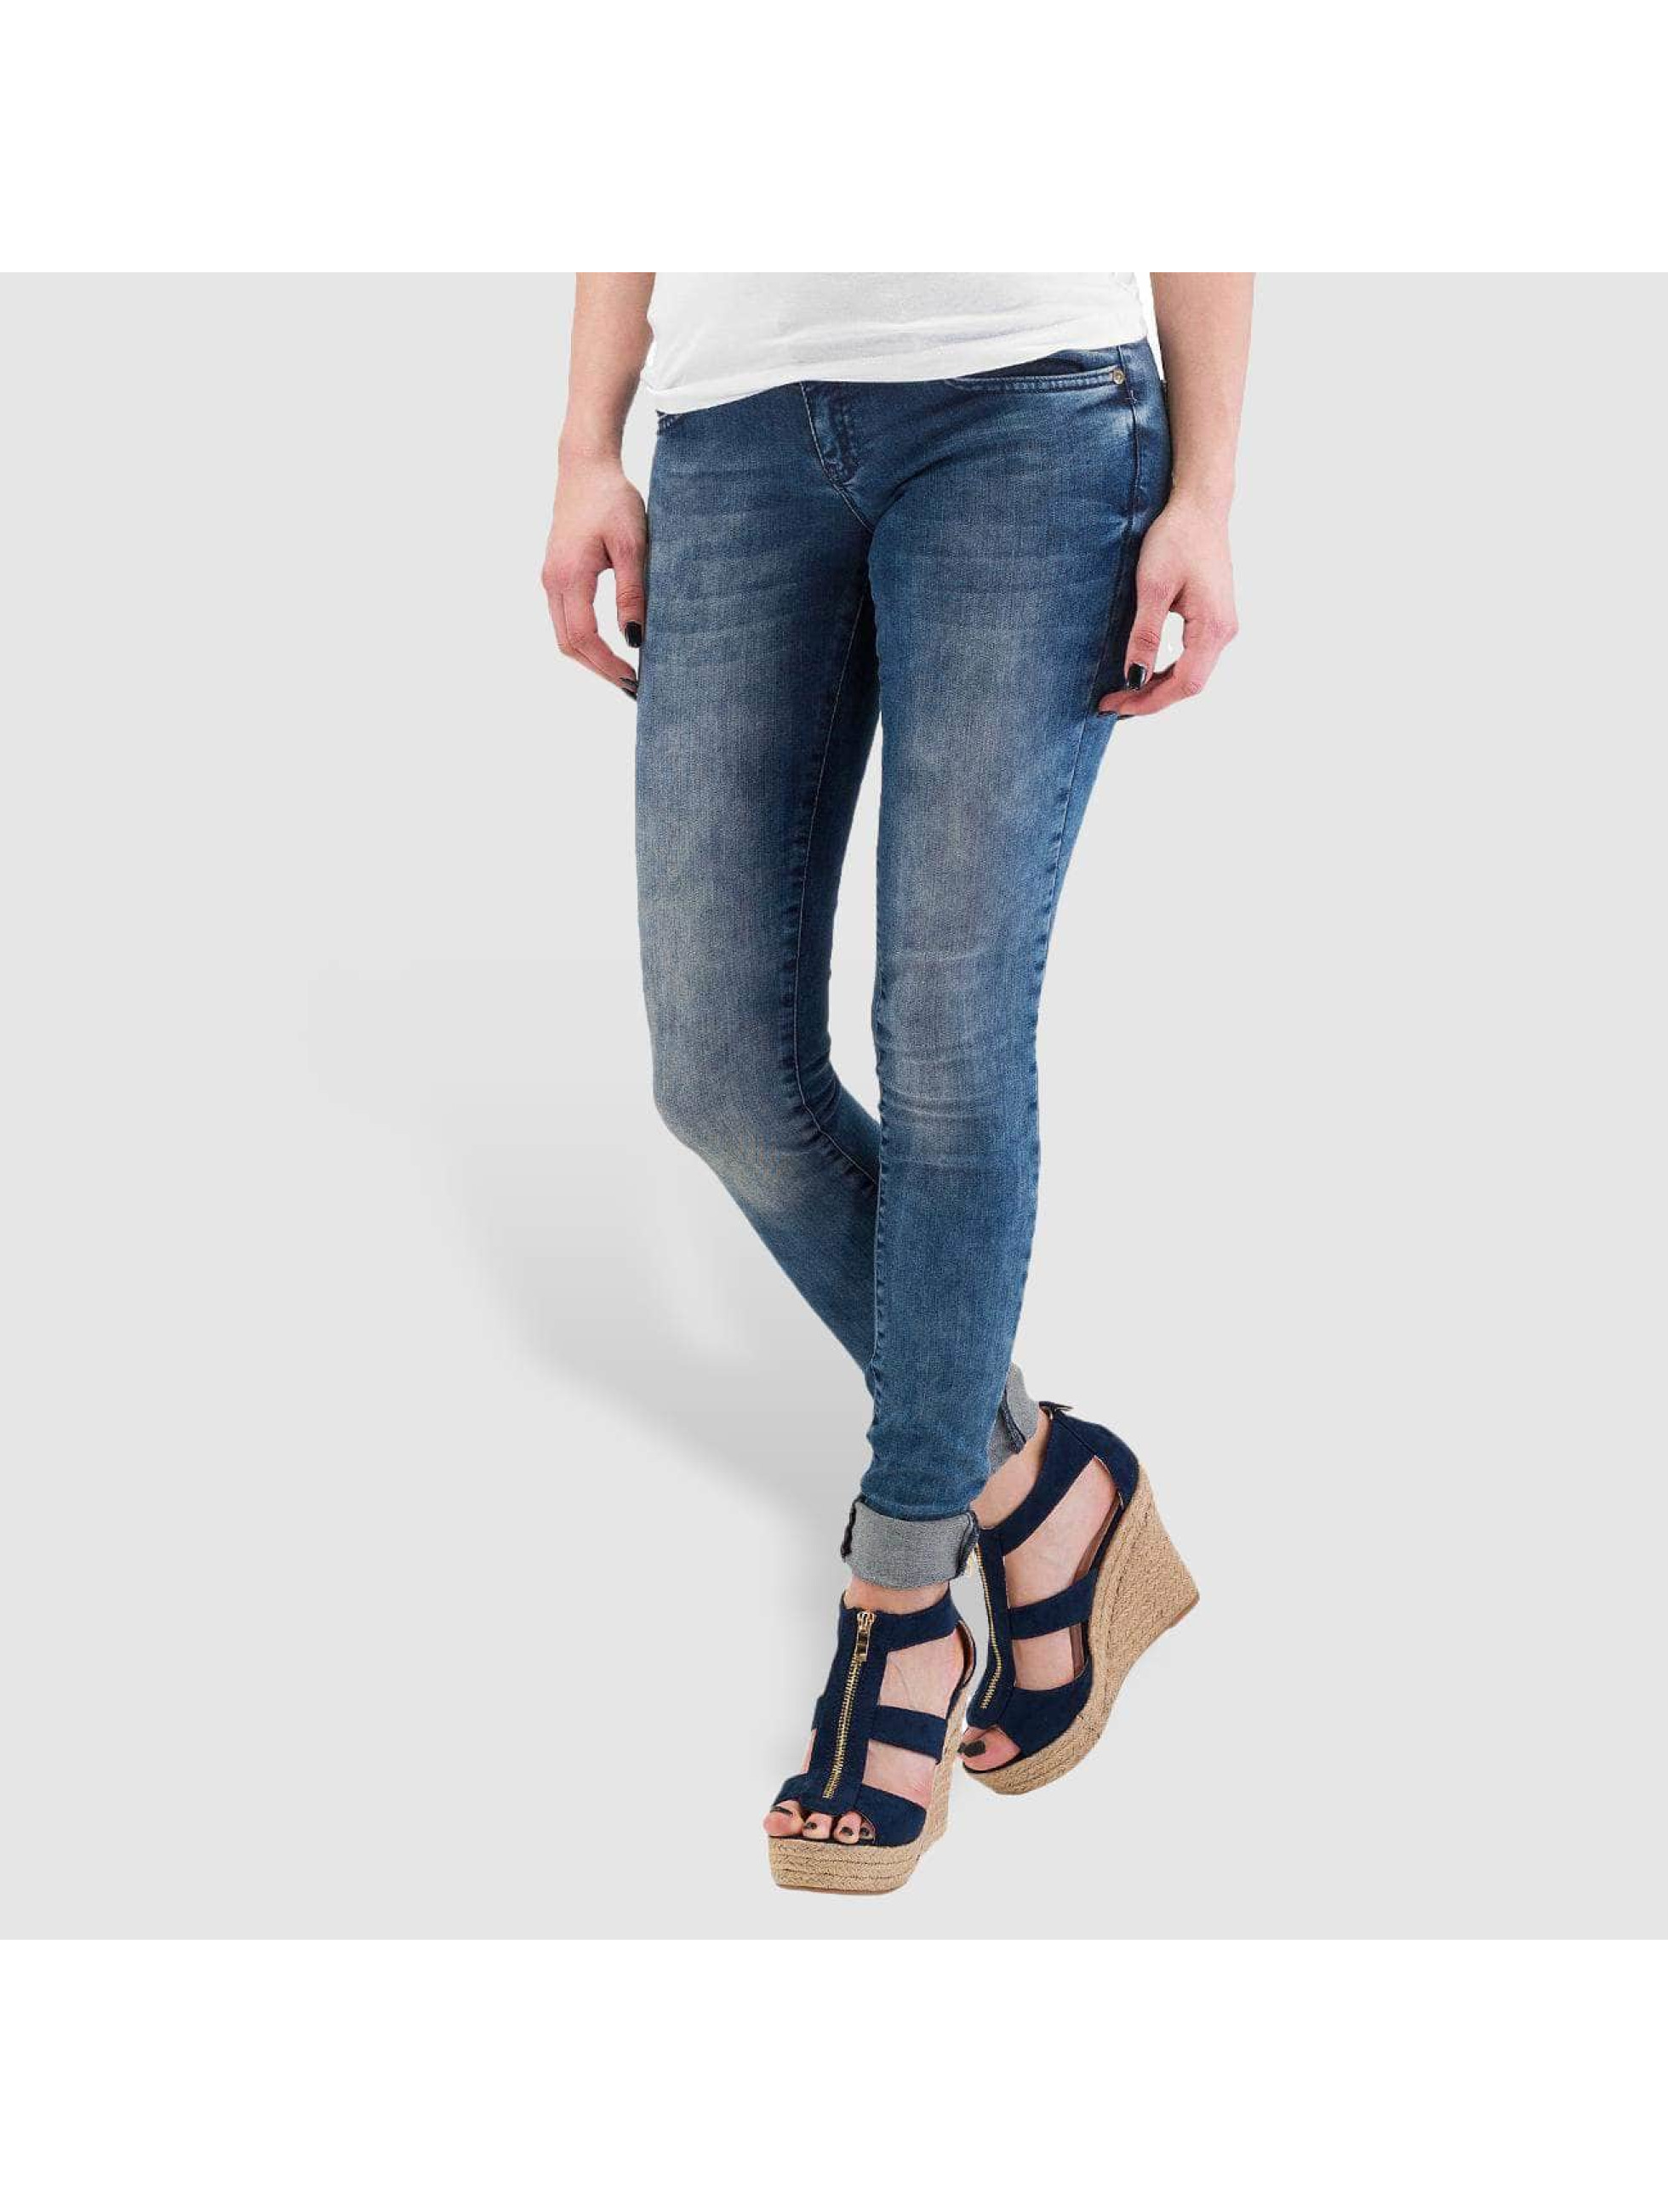 Just Rhyse / Skinny Jeans Tina in blue W 31